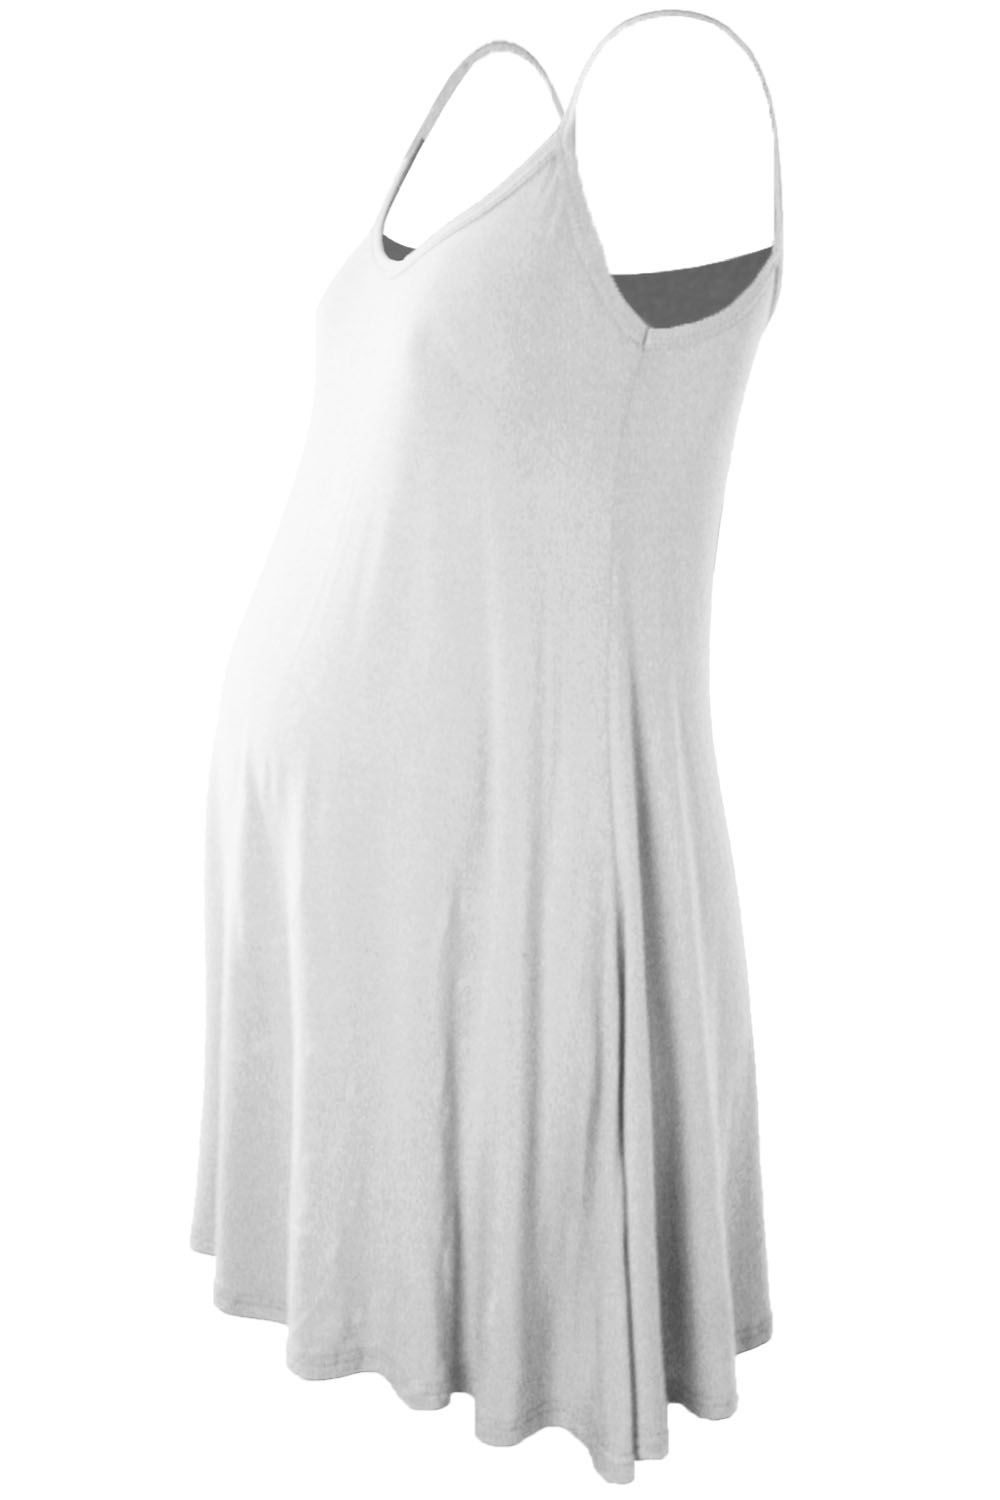 Womens-Ladies-Sleeveless-Cami-Floaty-Flare-Strappy-Maternity-Skater-Swing-Dress